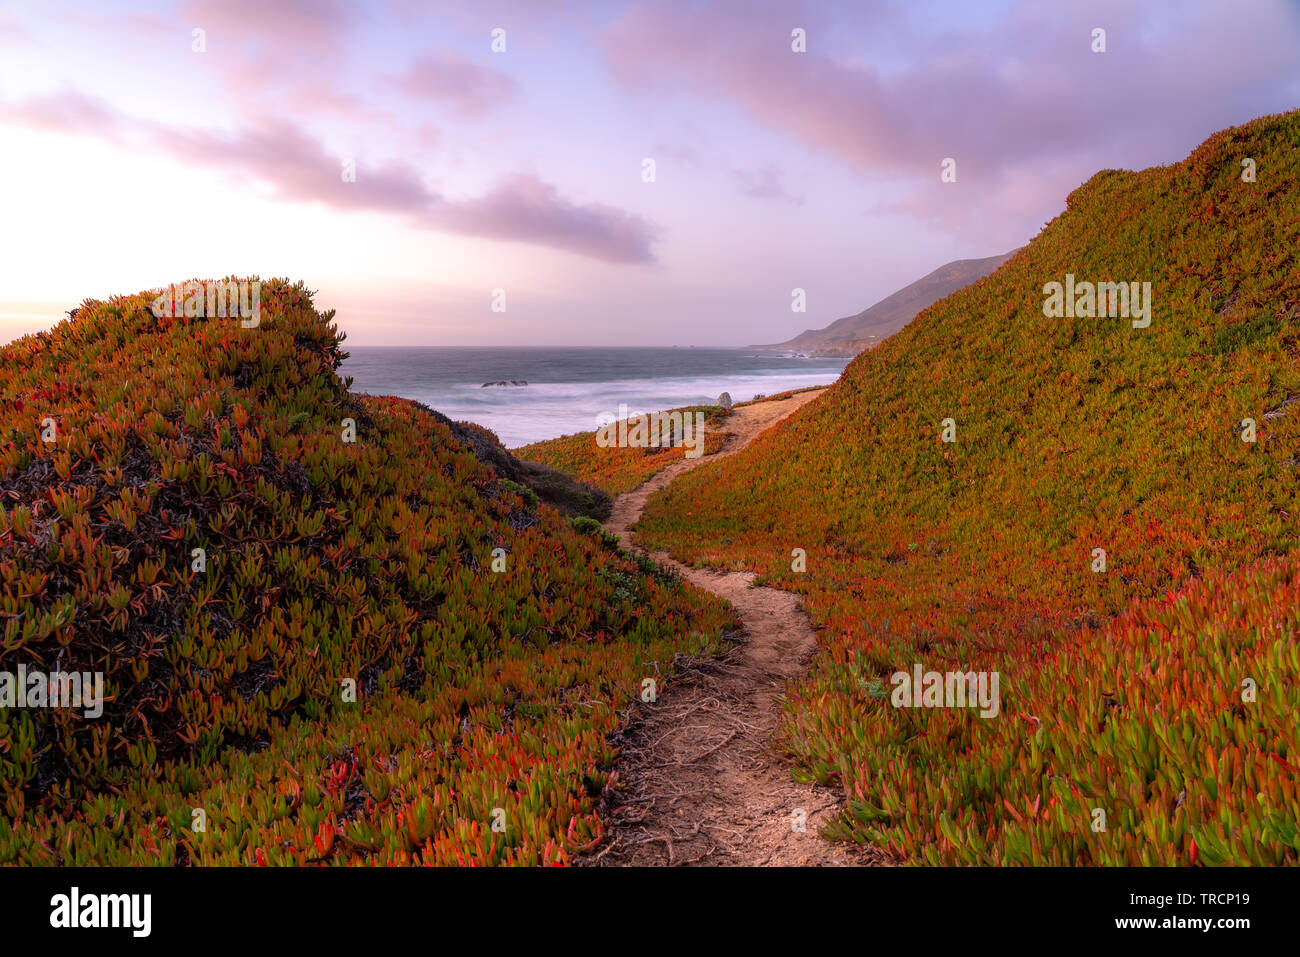 Sunset view at Calla Lily Valley near Big Sur, California. Stock Photo